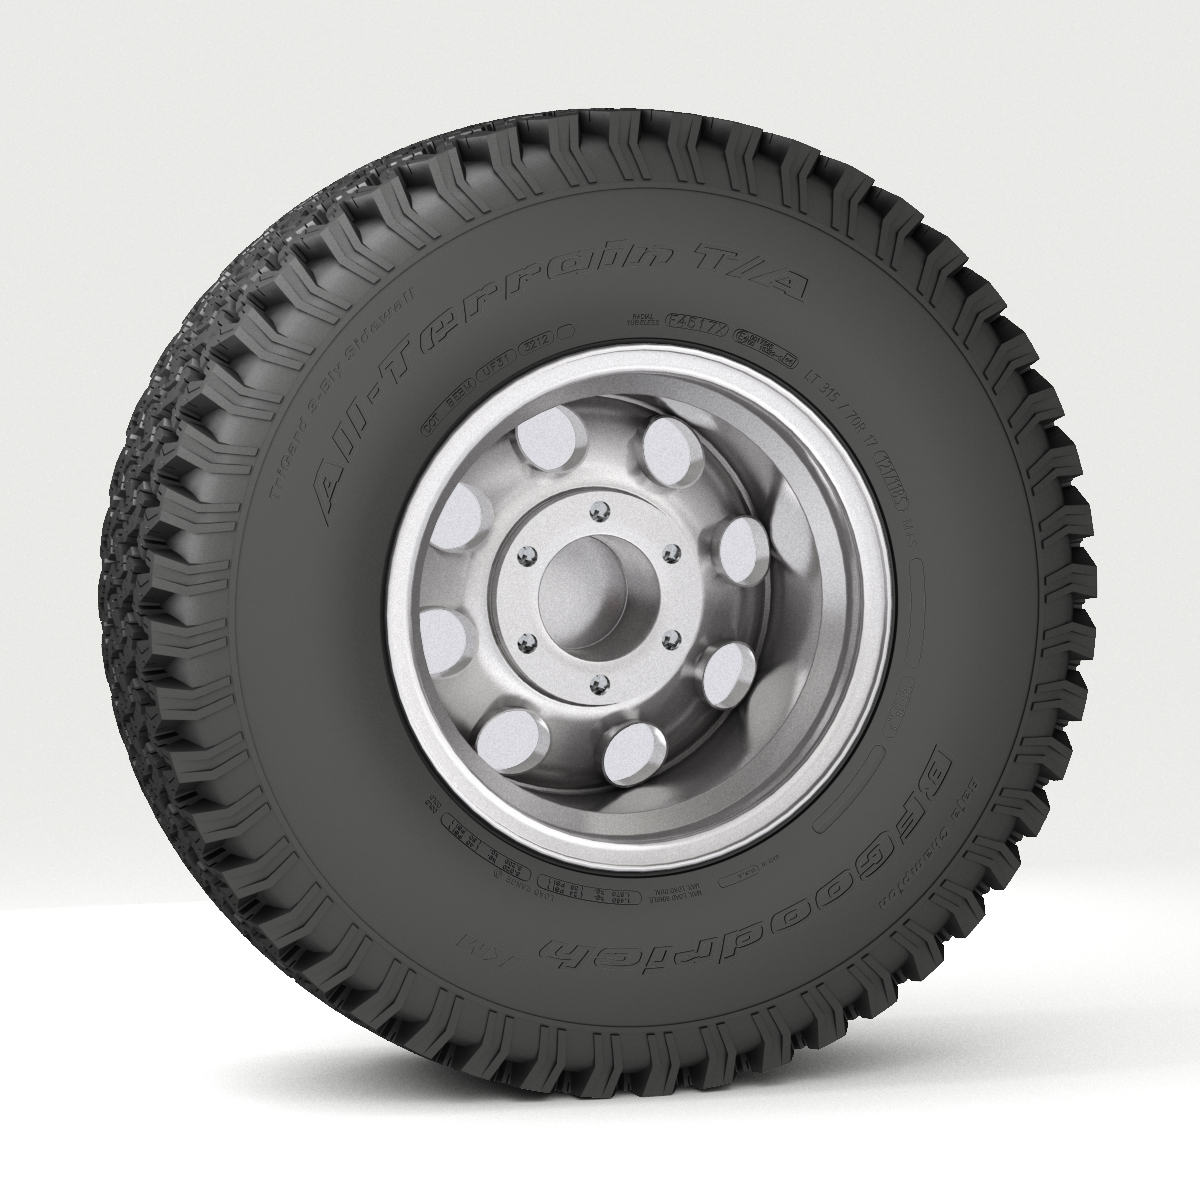 off road wheel and tire 3d model 3ds max fbx obj 224393